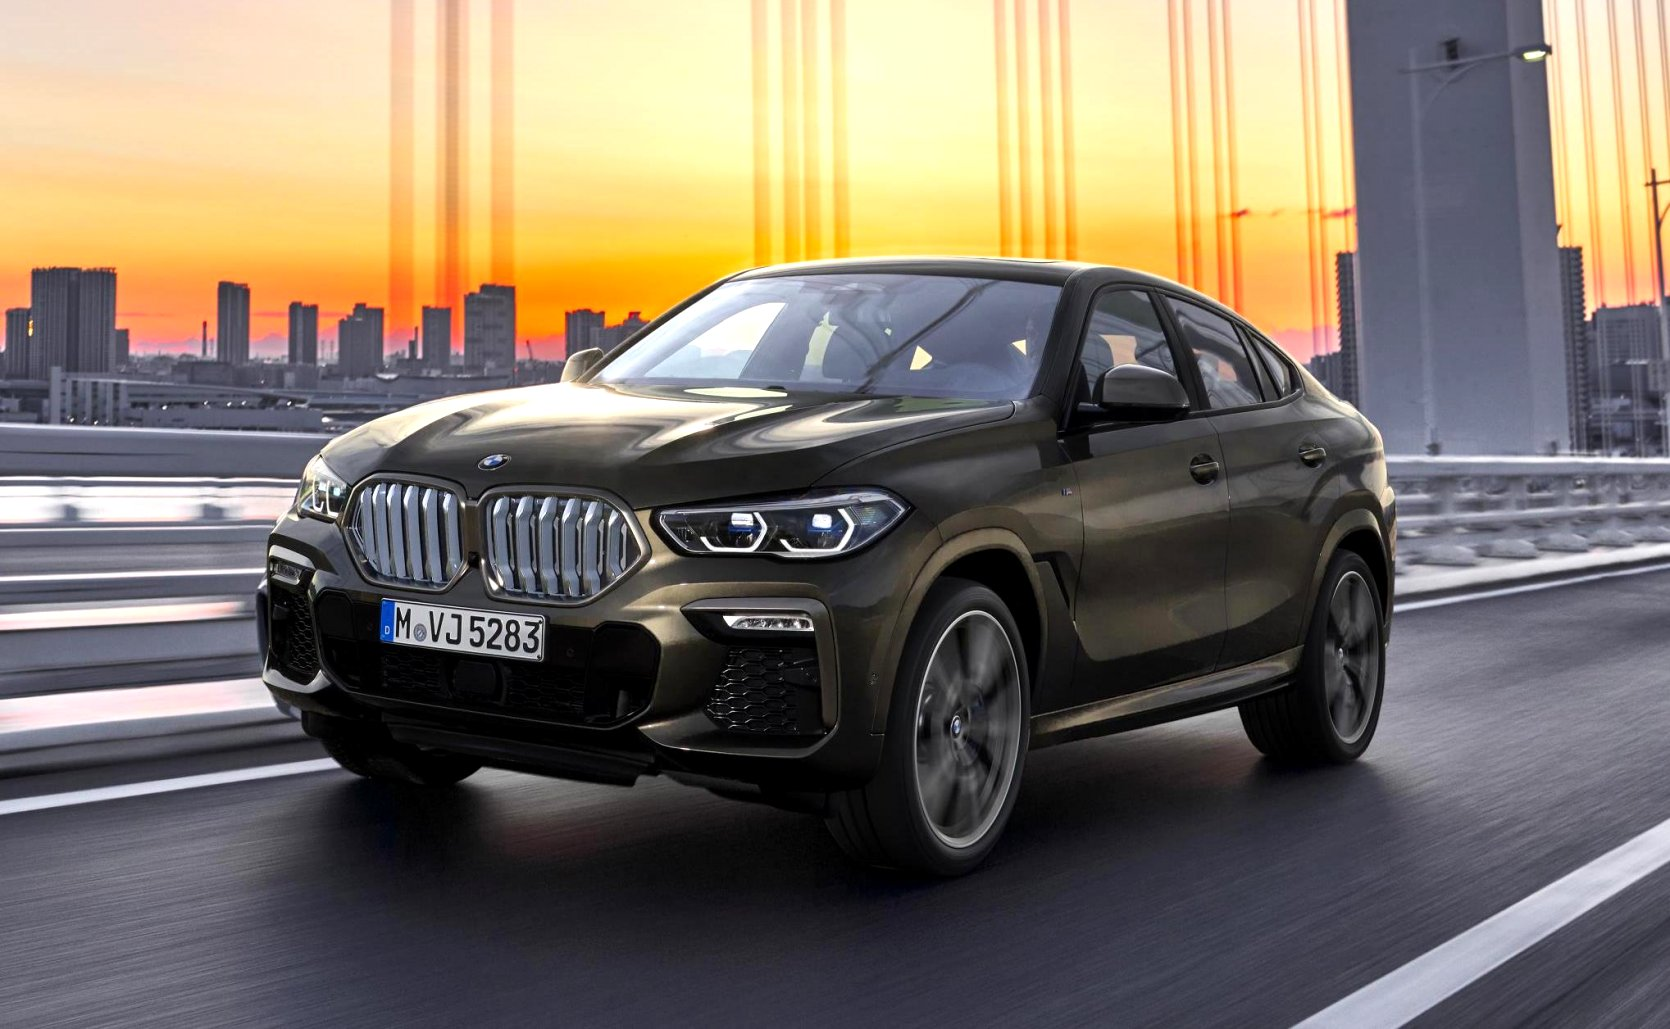 BMW latest model 2020 Release Date and Concept